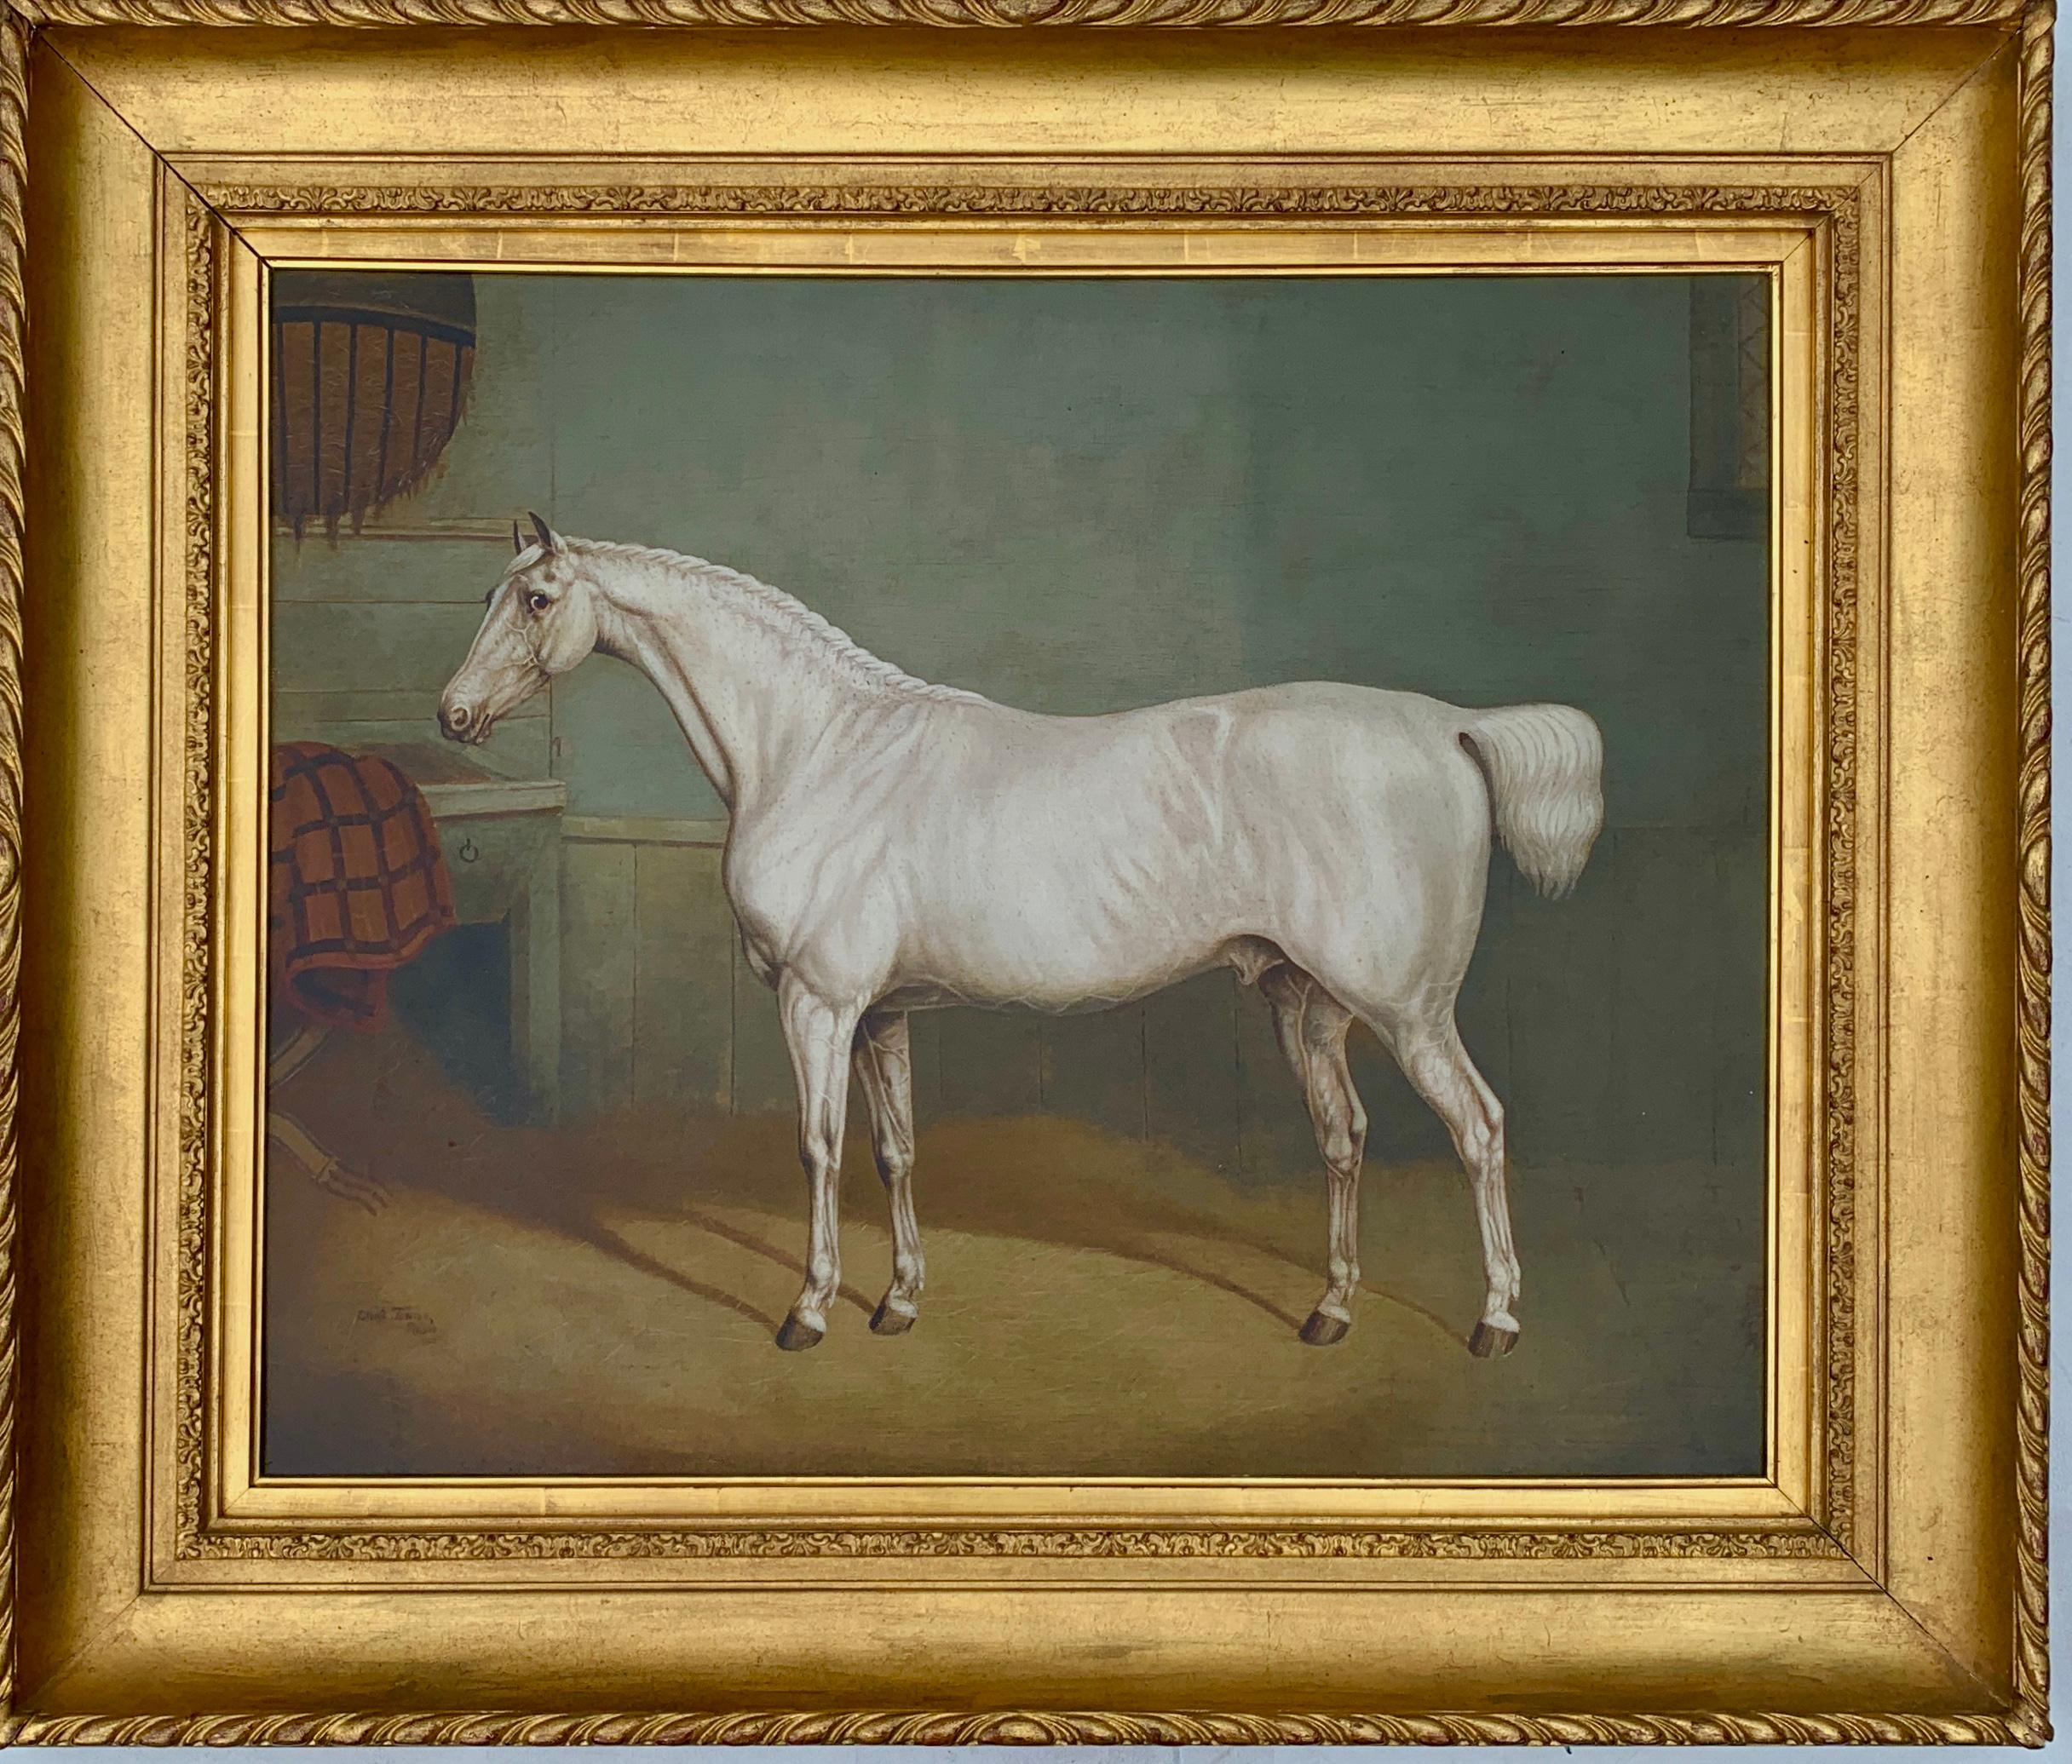 19th century English portrait of a White/grey hunter in a stable